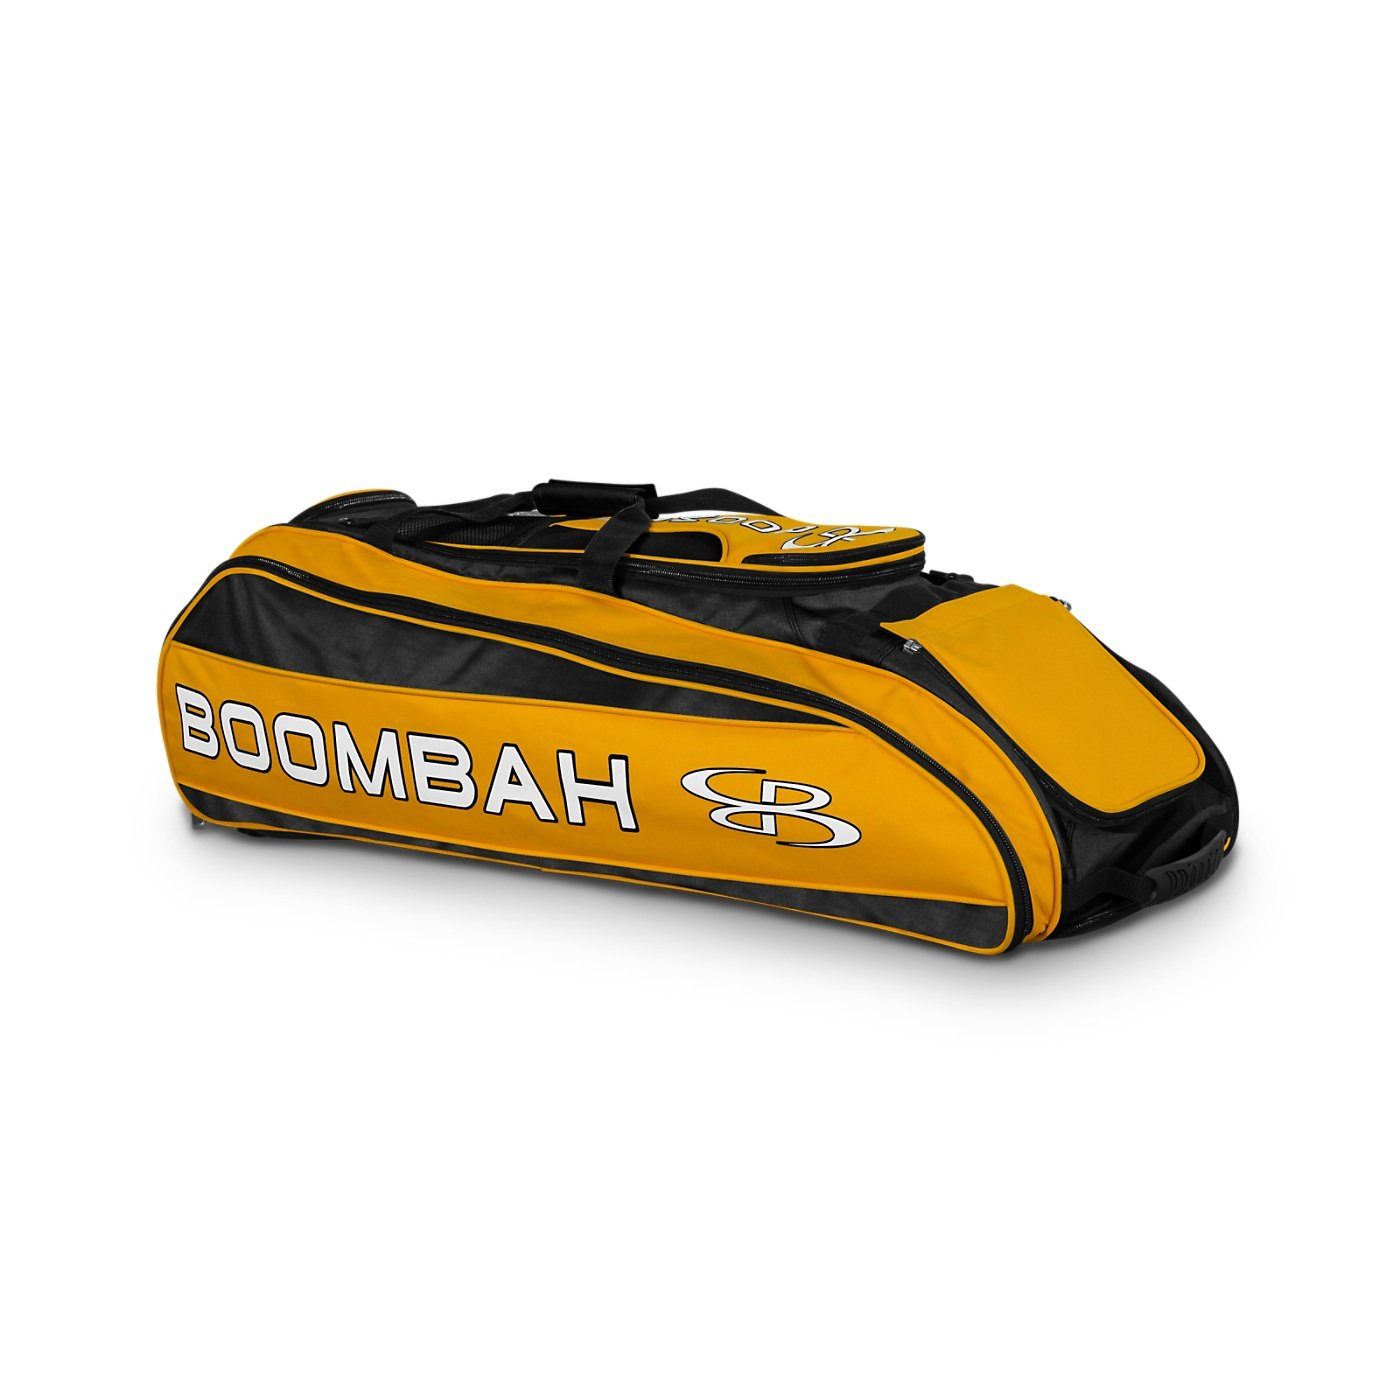 Boombah Beast Baseball/Softball Bat Bag - 40'' x 14'' x 13'' - Black/Gold - Holds 8 Bats, Glove & Shoe Compartments by Boombah (Image #1)